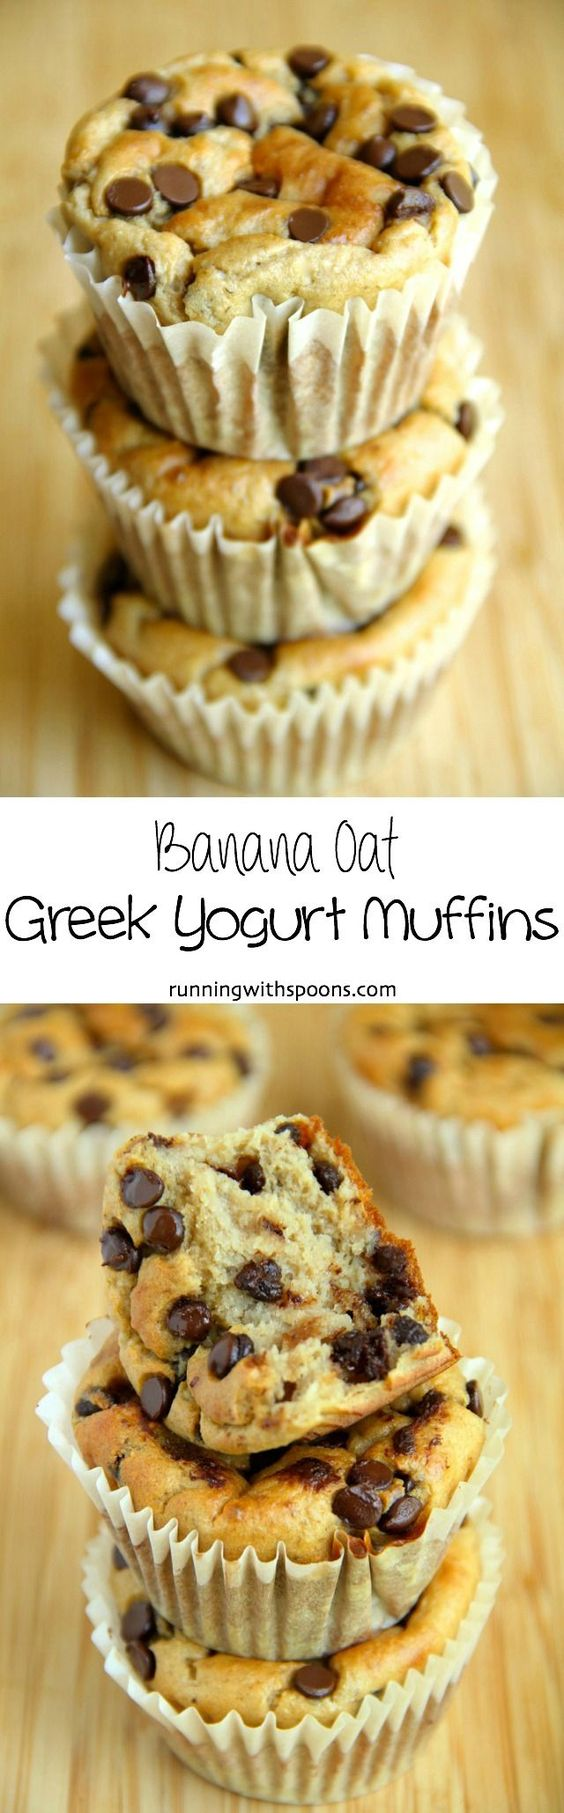 Banana Oat Greek Yogurt Muffins -- no flour, no oil, and 100% ridiculously delicious!    runningwithspoons.com